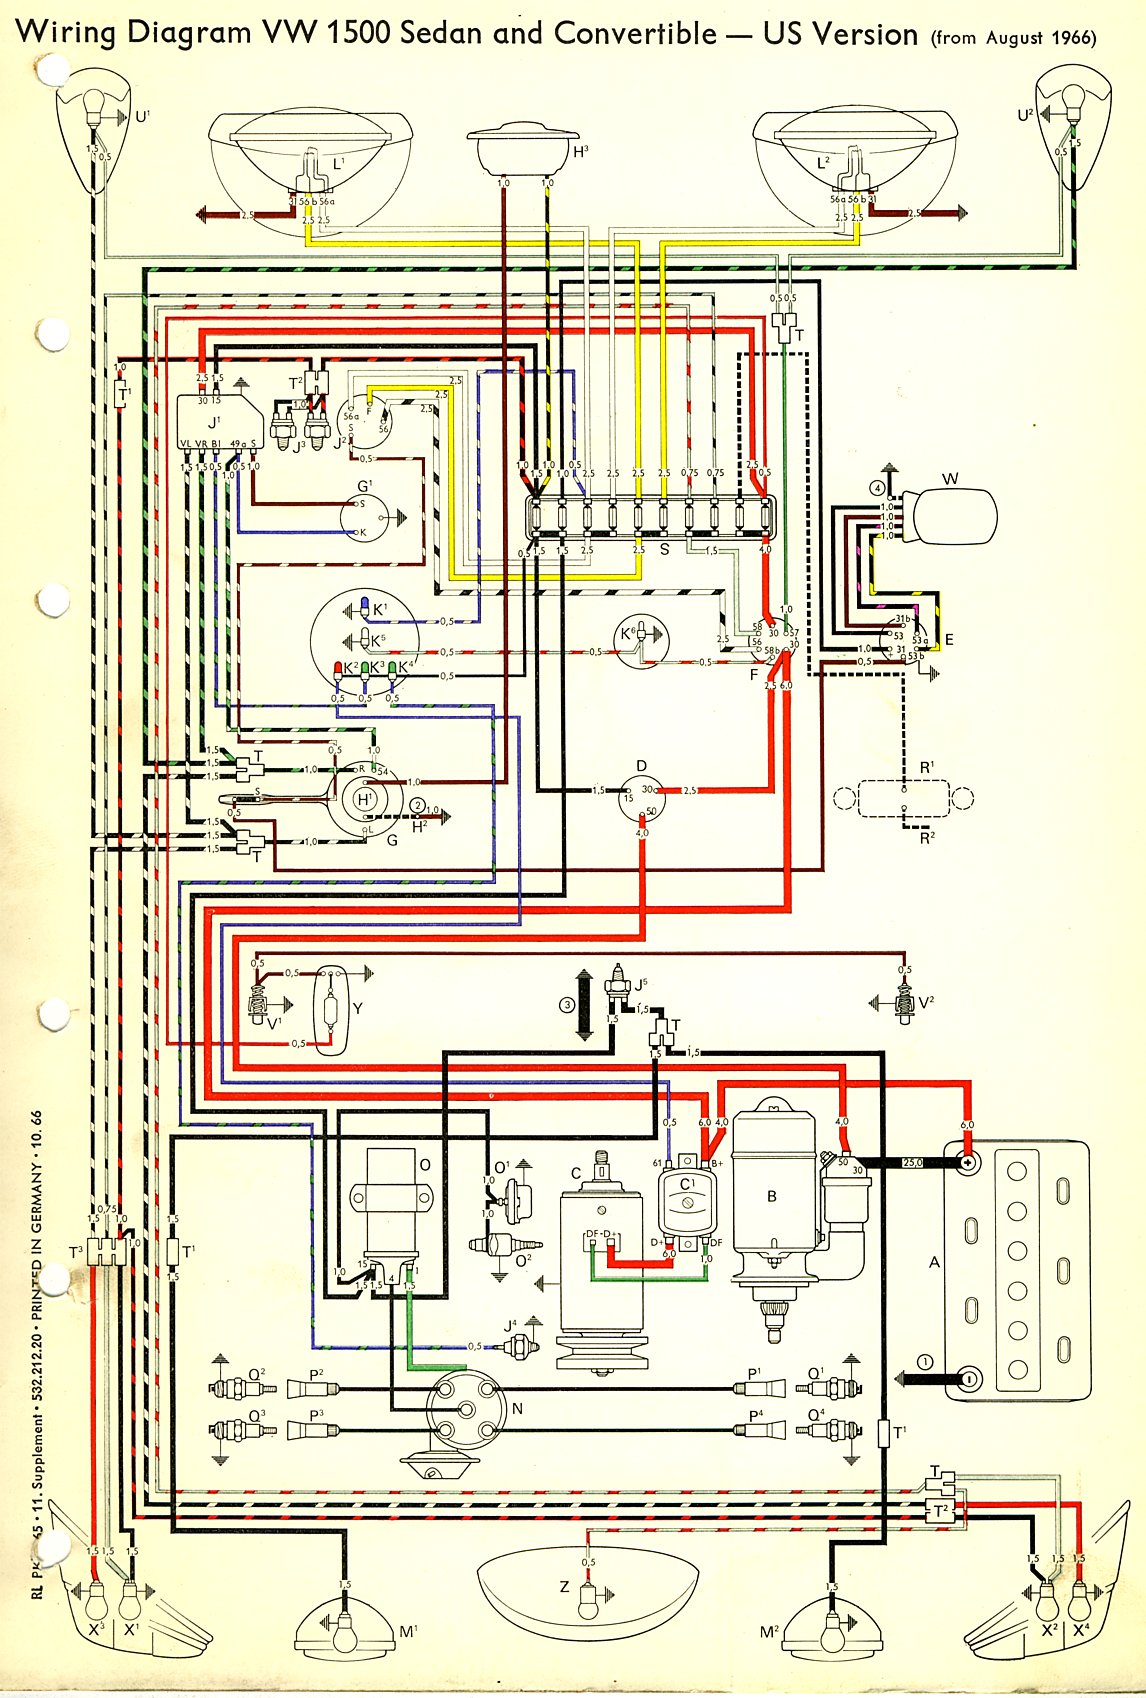 thesamba com type 1 wiring diagrams rh thesamba com 1964 VW Wiring Diagram VW 1500 Wiring Diagram